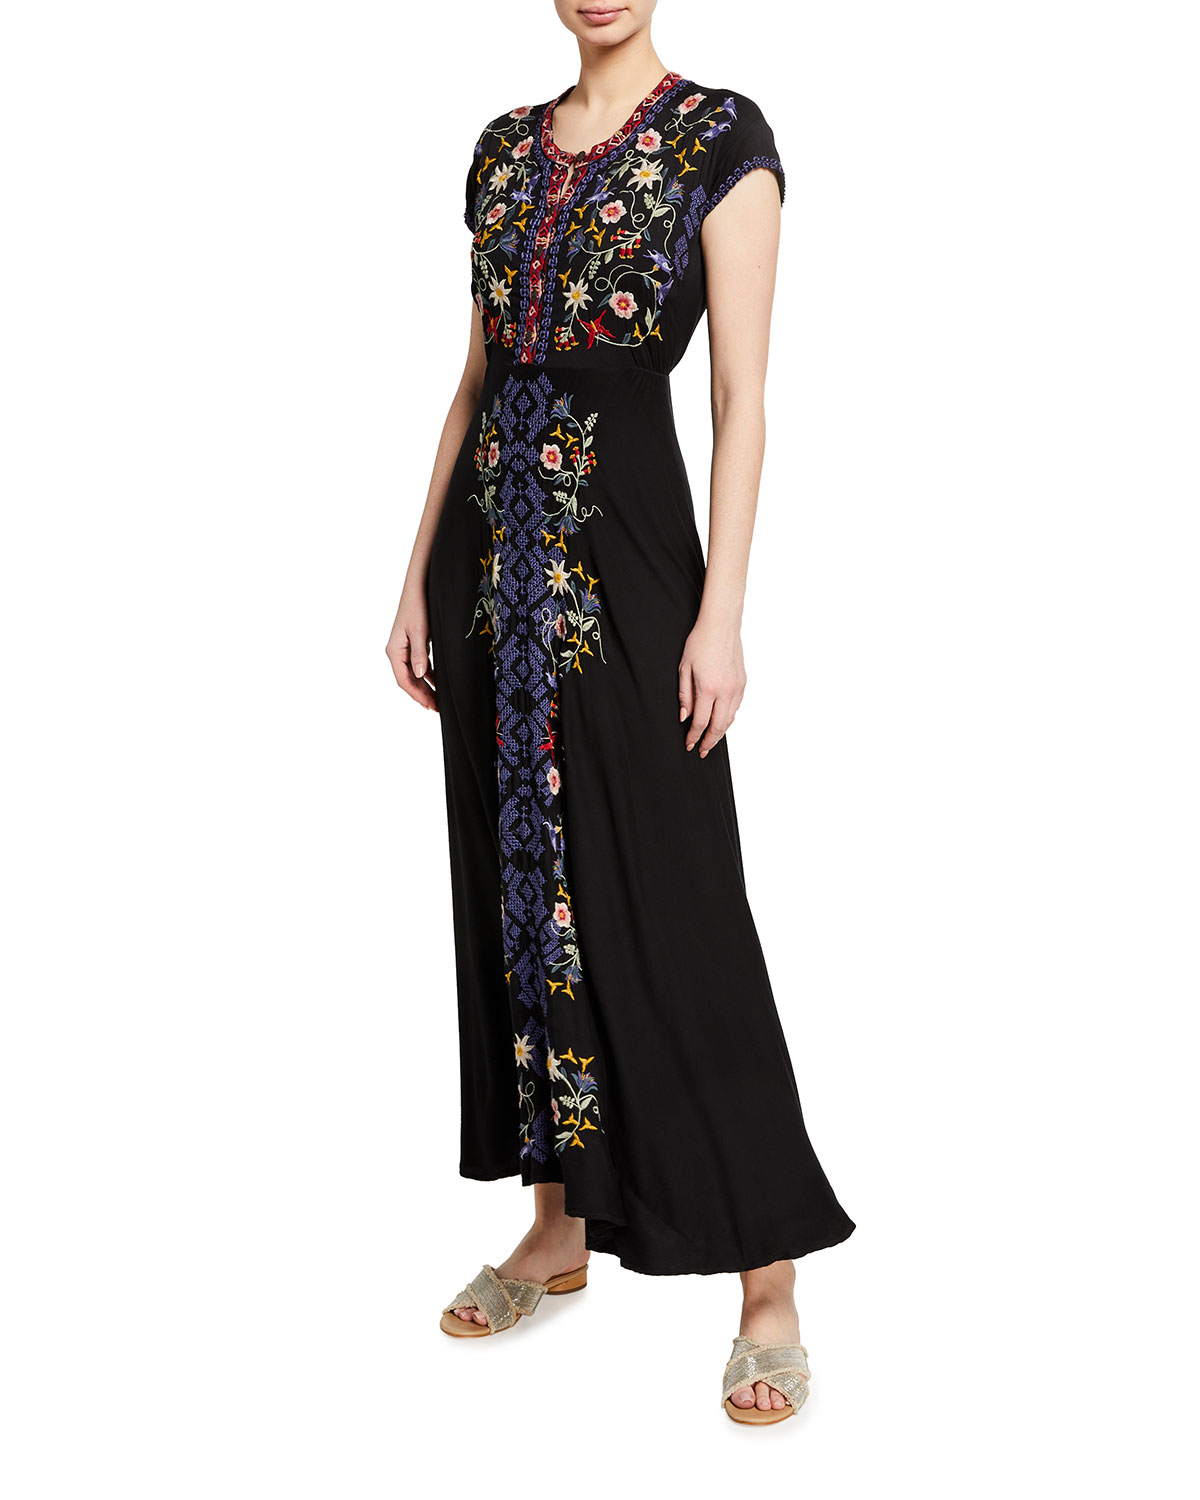 Johnny Was Mariposa Embroidered Stretch Challis Long Dress